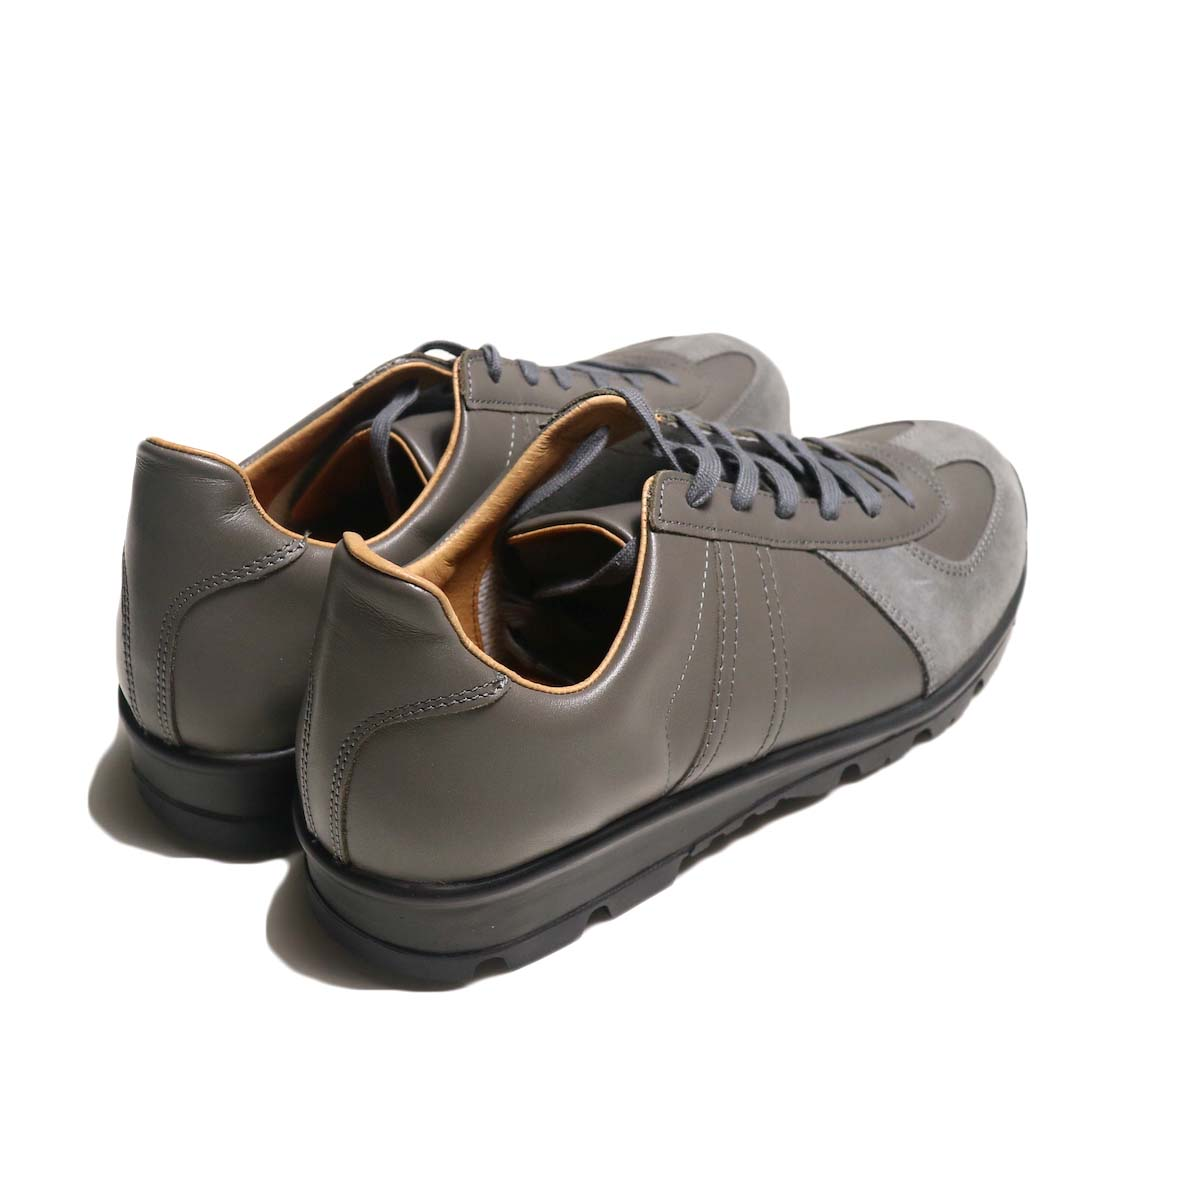 REPRODUCTION OF FOUND / GERMAN MILITARY TRAINER (TACTICAL) (Dark Gray) 背面